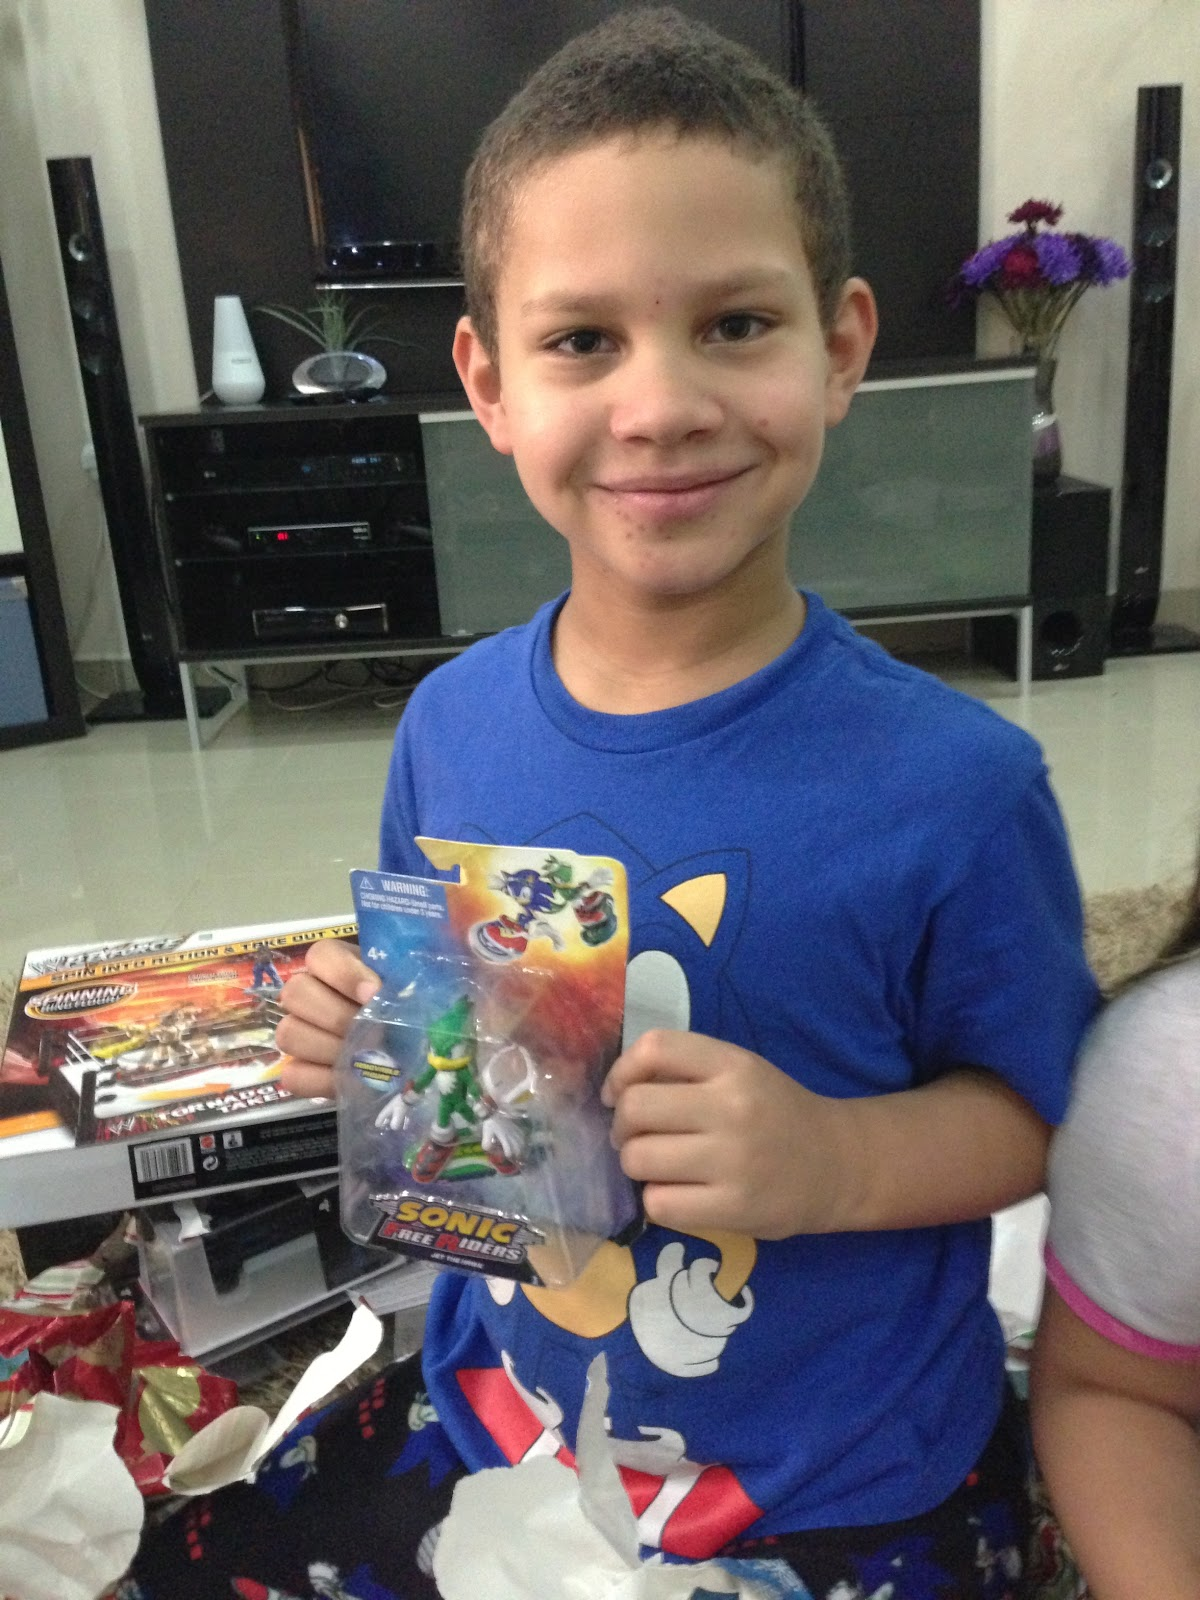 Uncategorized Make Your Own Skylander just us merry christmas 2012 kuwait make your own clothes so clever mimi is very hands on skylander giants